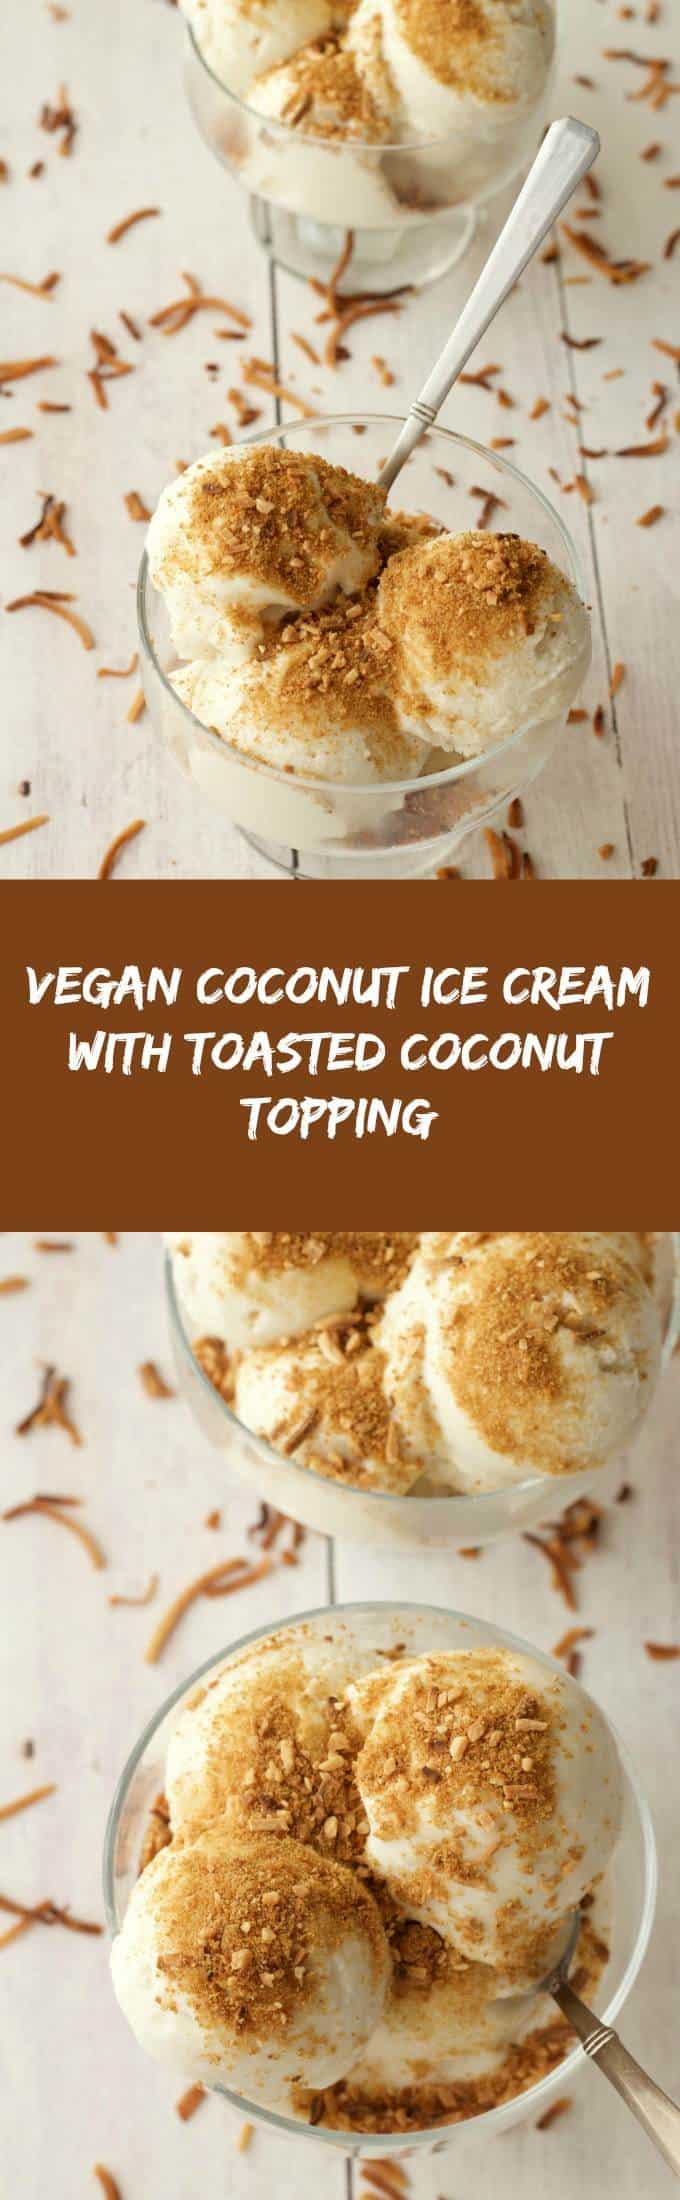 Coconut Ice Cream with Toasted Coconut Topping #vegan #lovingitvegan #dessert #icecream #coconut #dairyfree